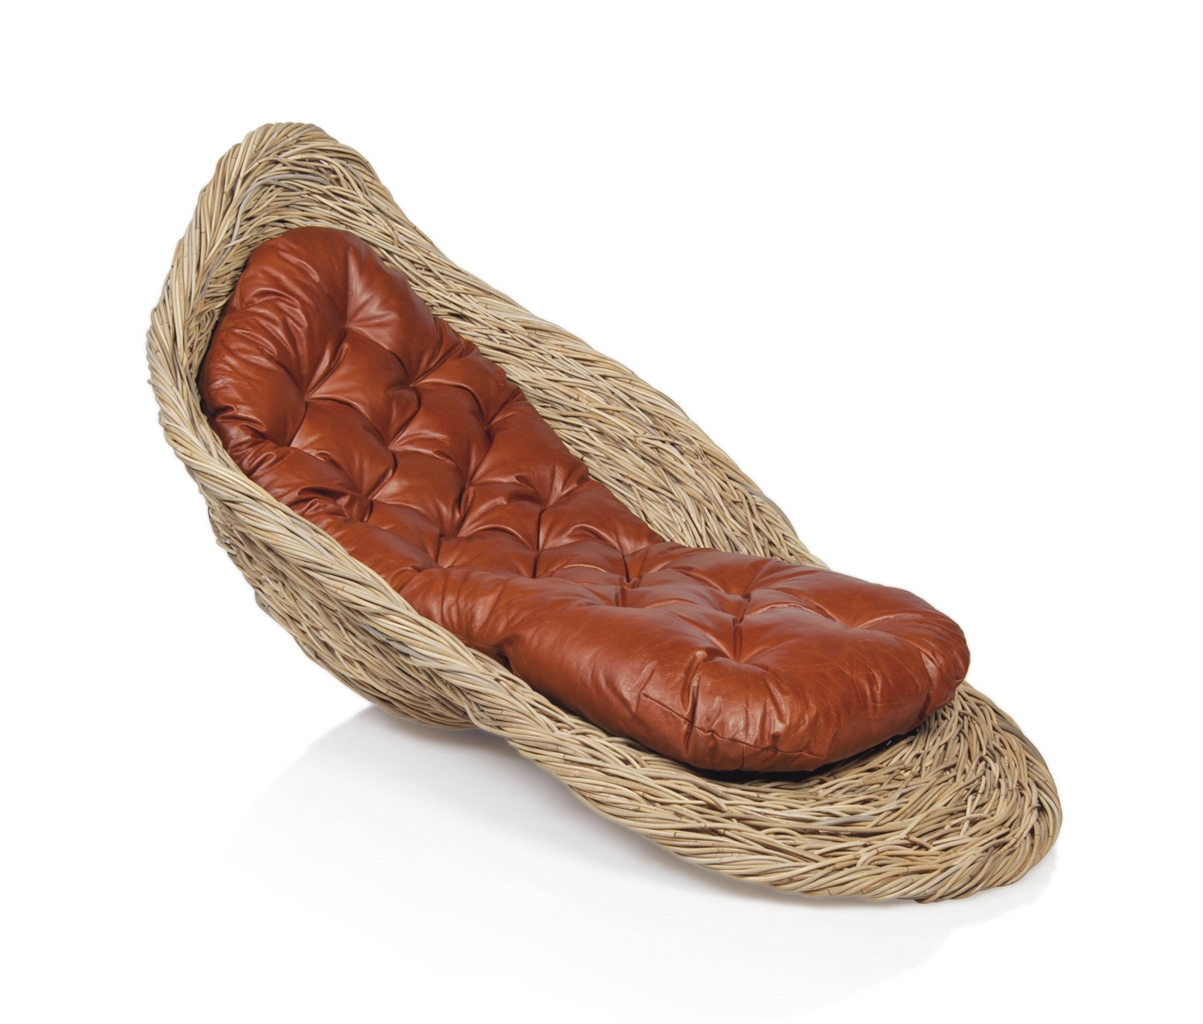 Porky Hefer-'Fallen Bird's Nest', A Lounger-2014